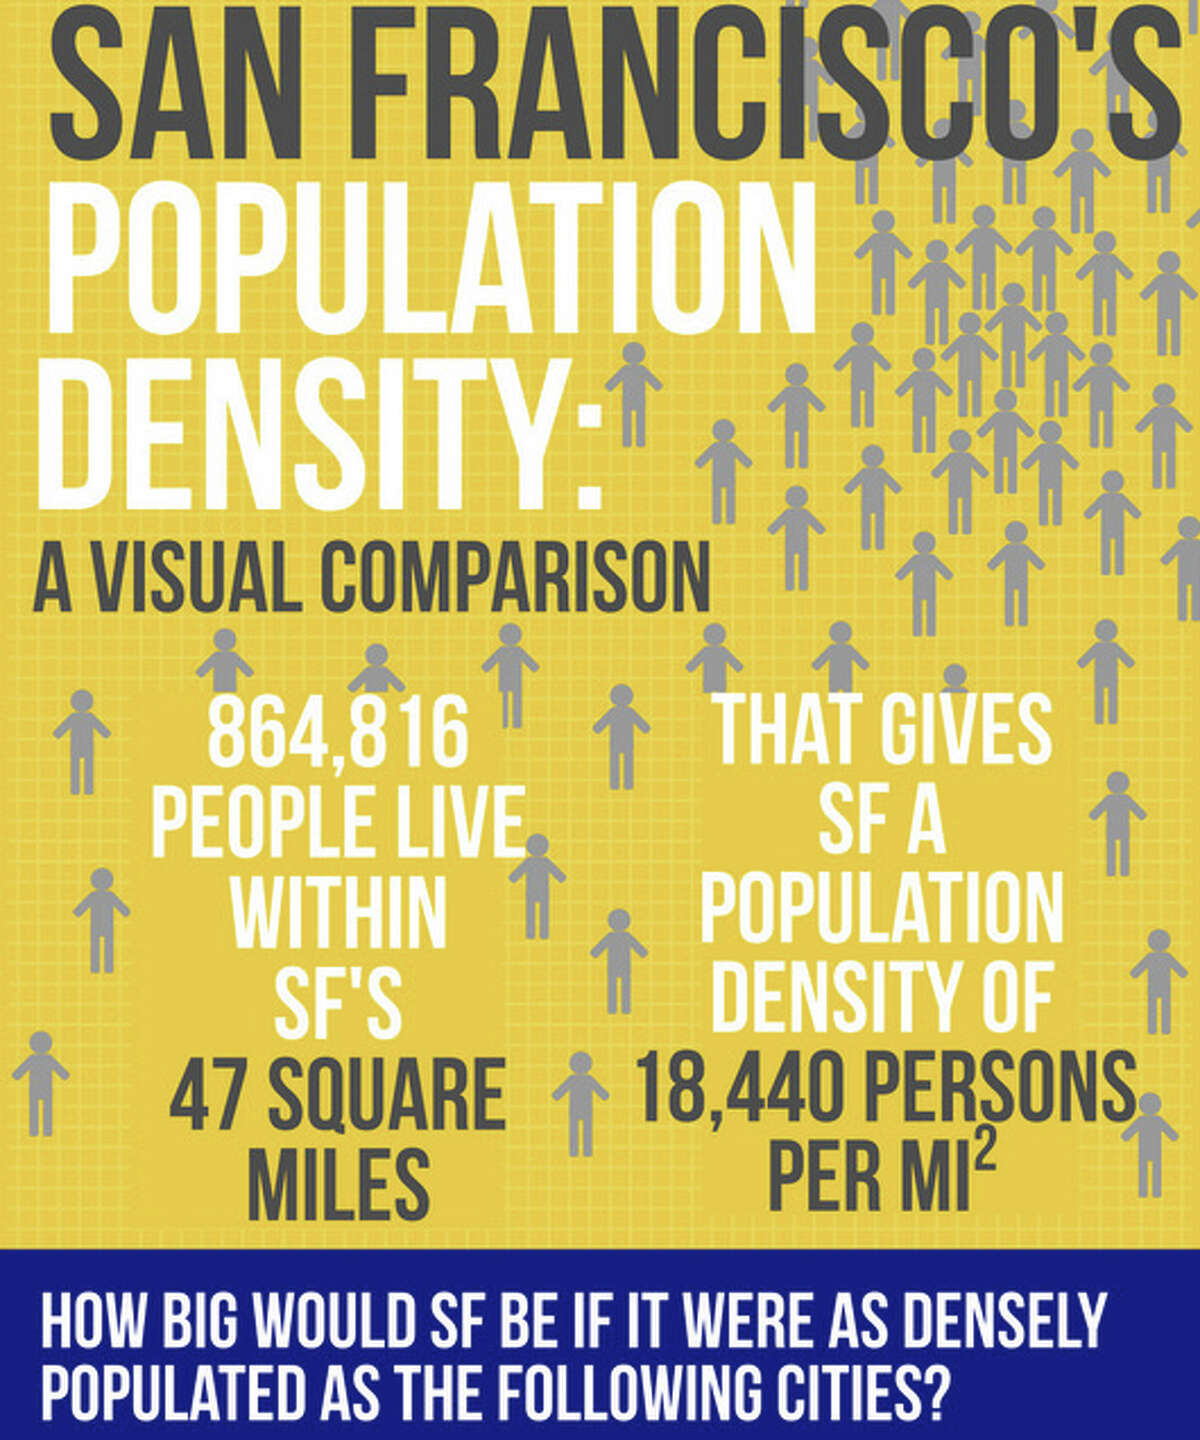 How big would San Francisco be if it were as densely populated as the following cities? A comparison compiled by the storage space company SpareFoot follows.